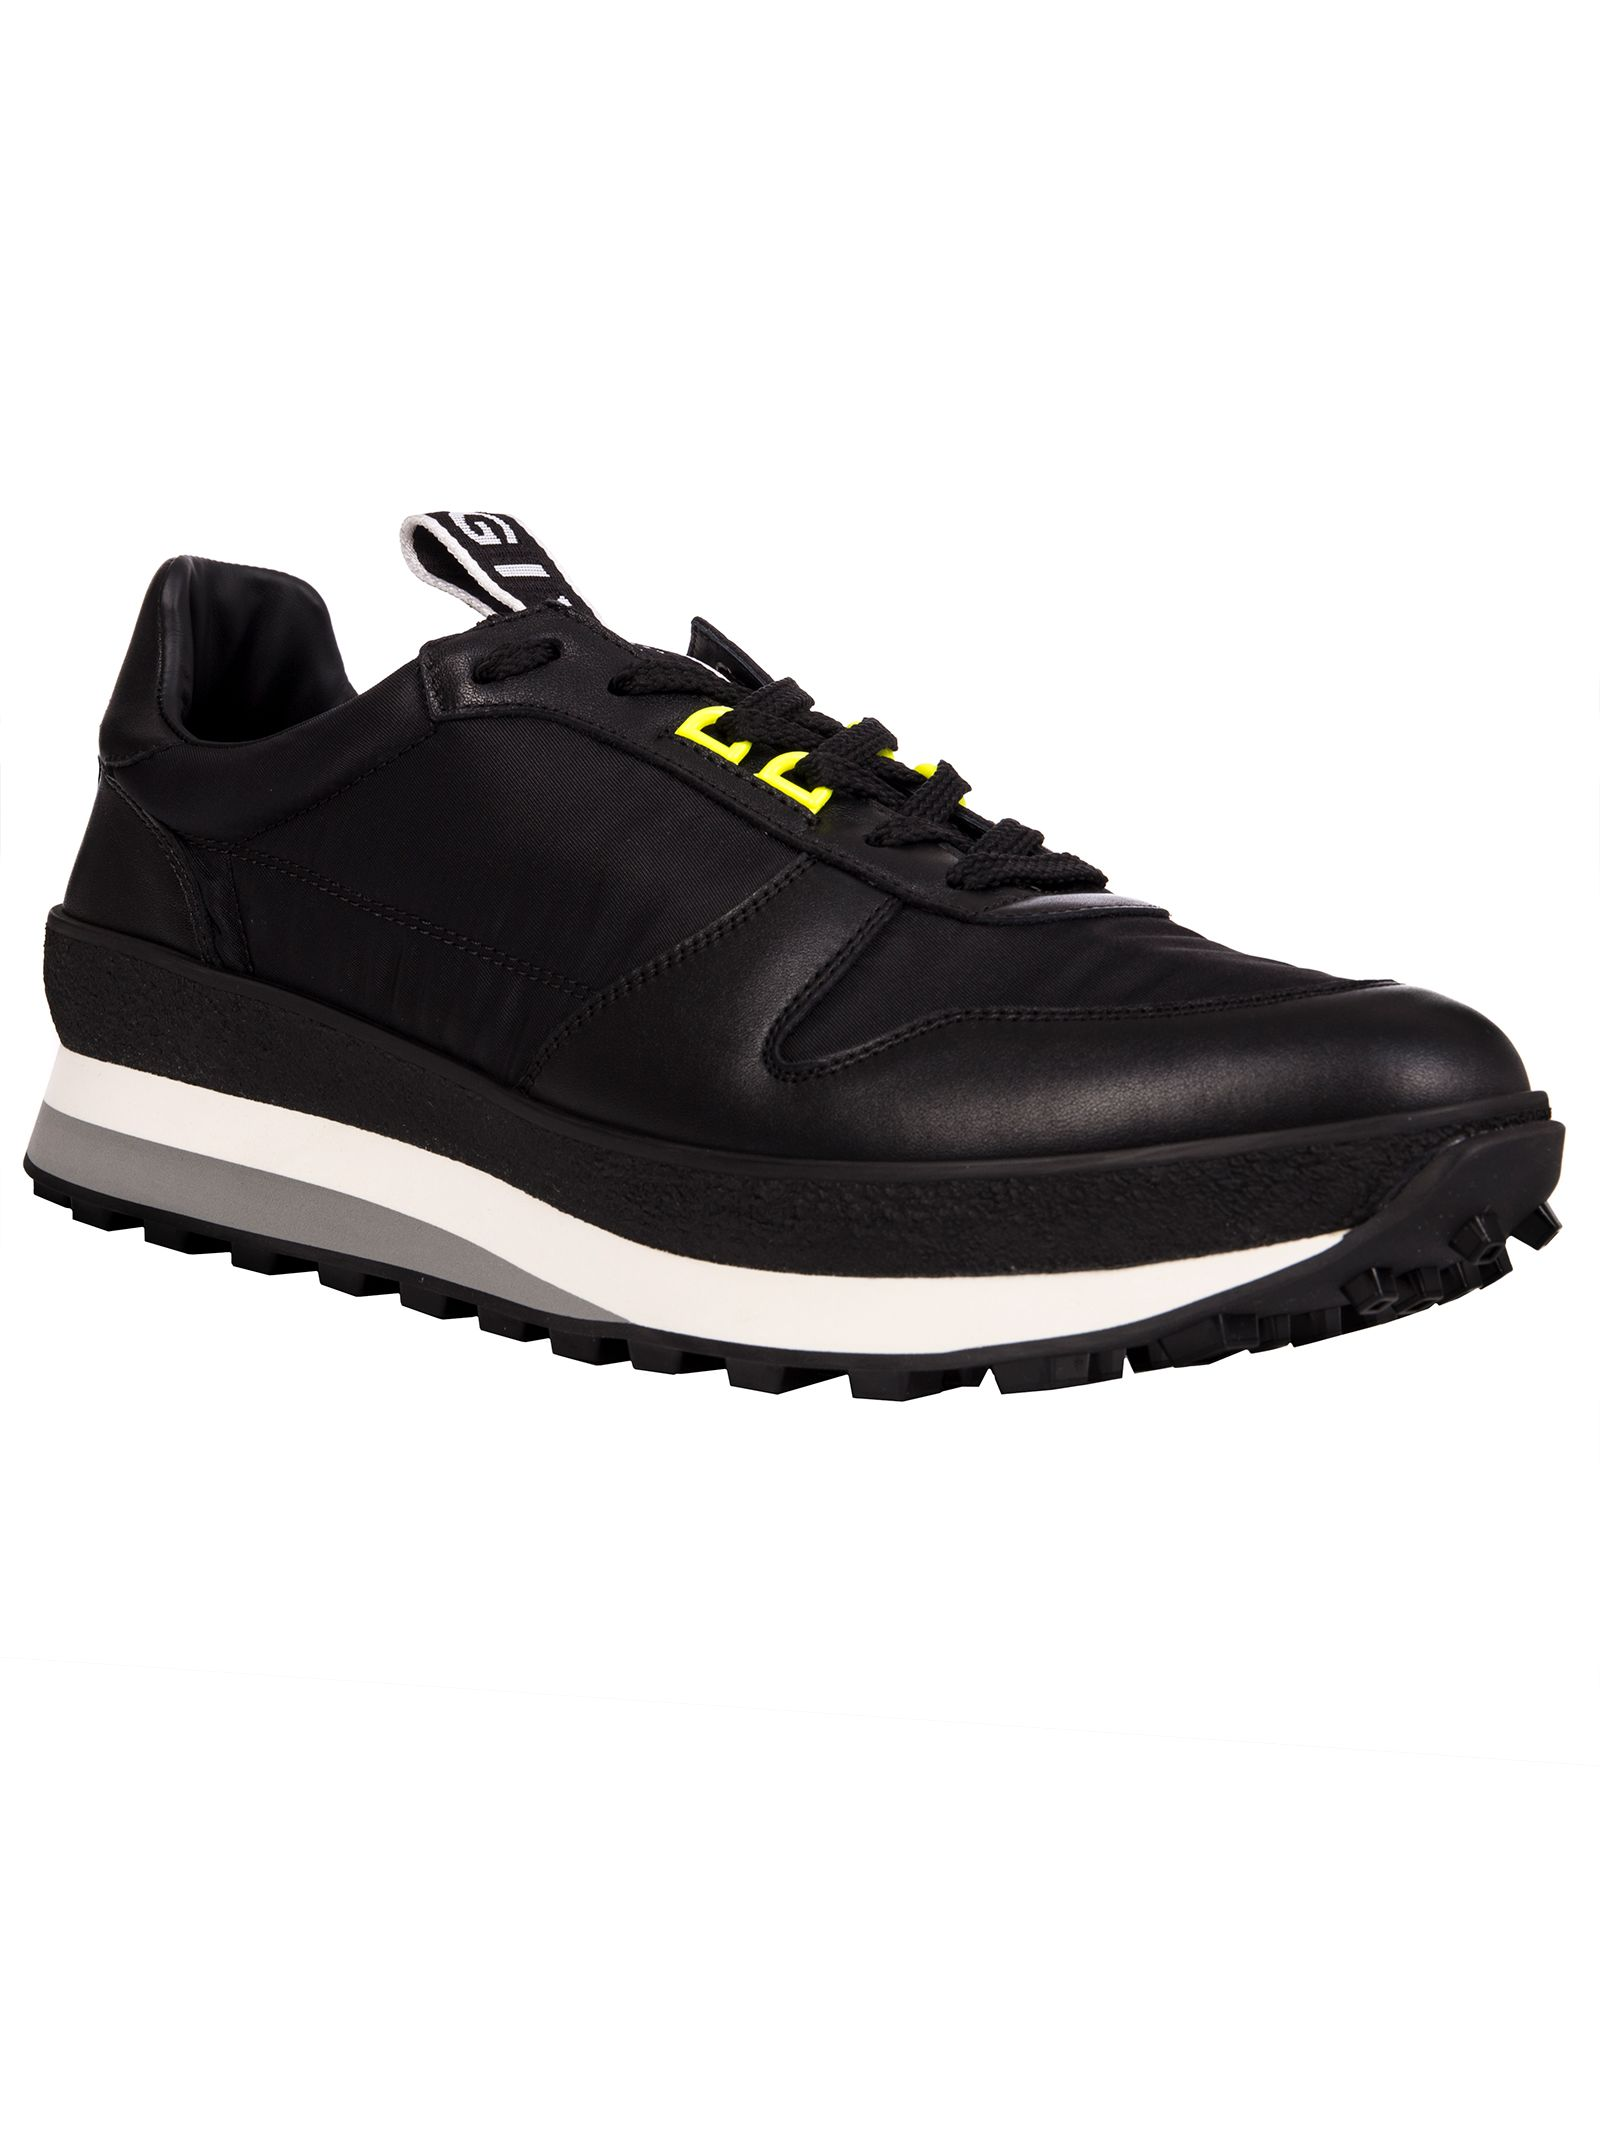 GIVENCHY T3 RUNNER SNEAKERS IN BLACK